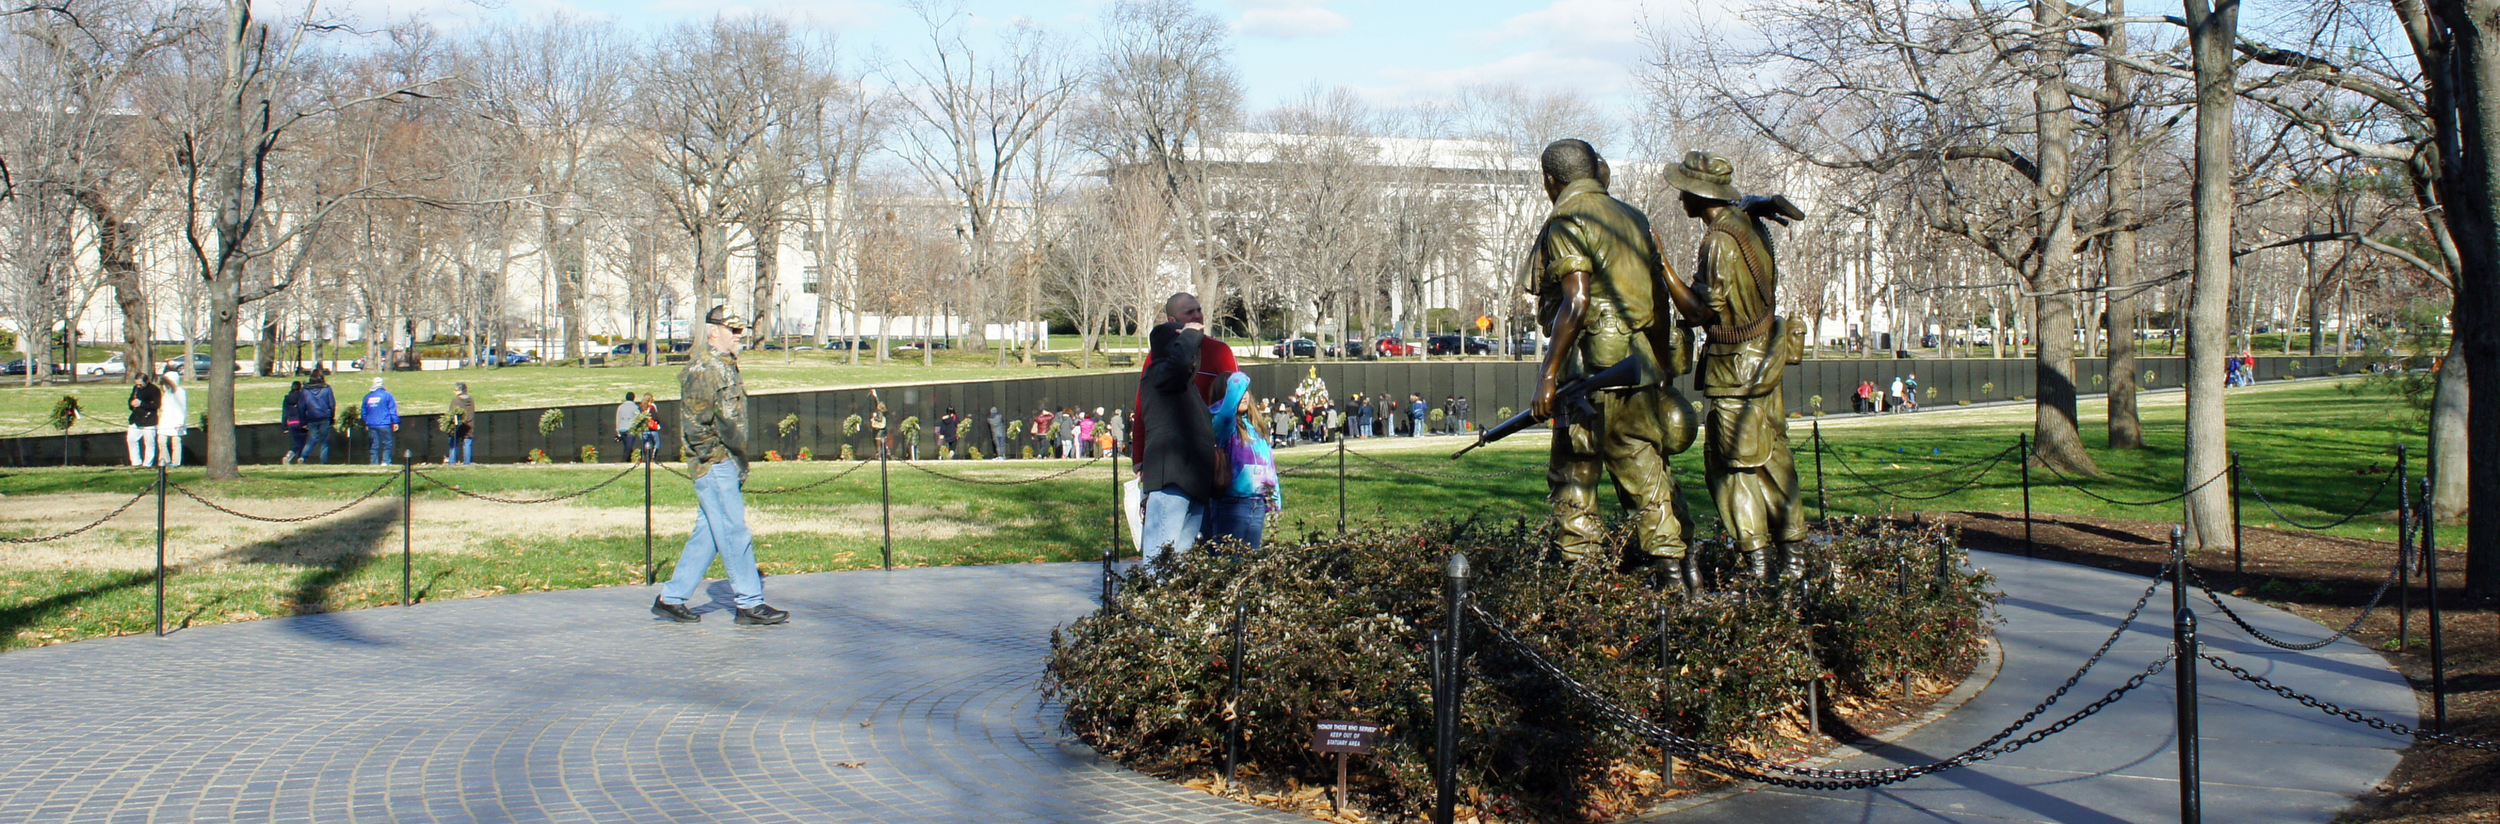 Panoramic view of the Vietnam Veterans Memorial Wall with a partial view the Three Soldiers sculpture in the foreground